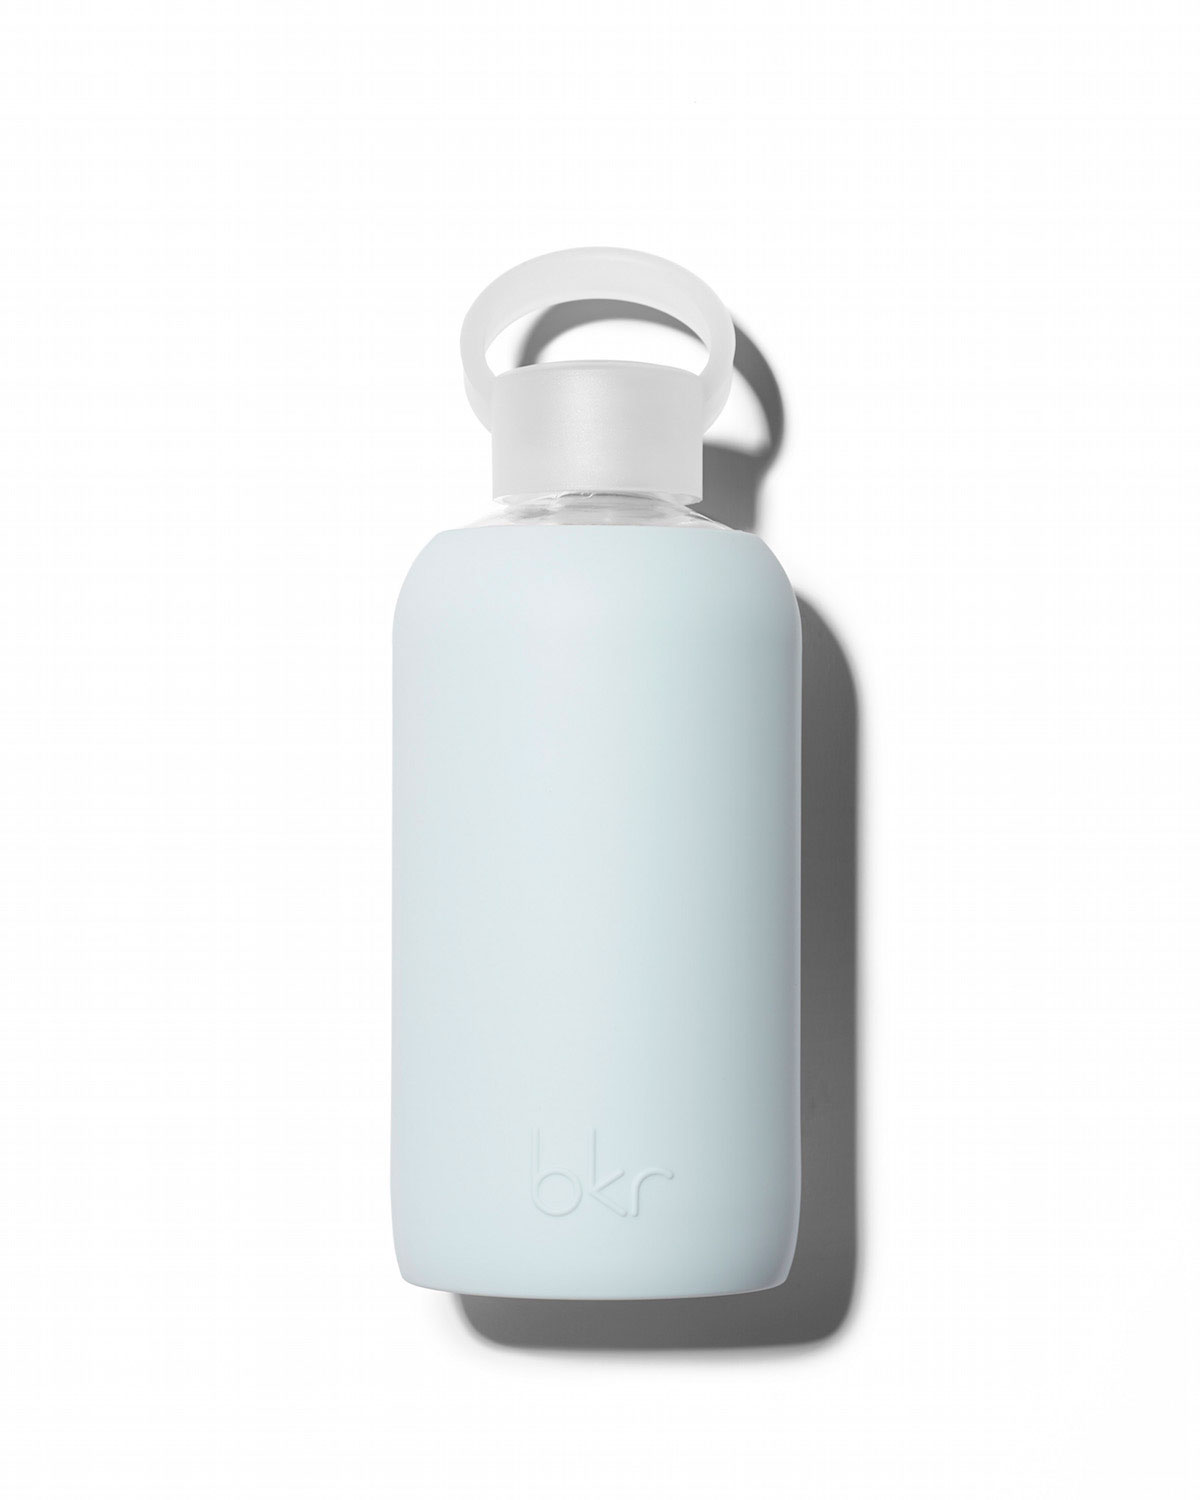 Glass Water Bottle, Wren, 500 mL - bkr